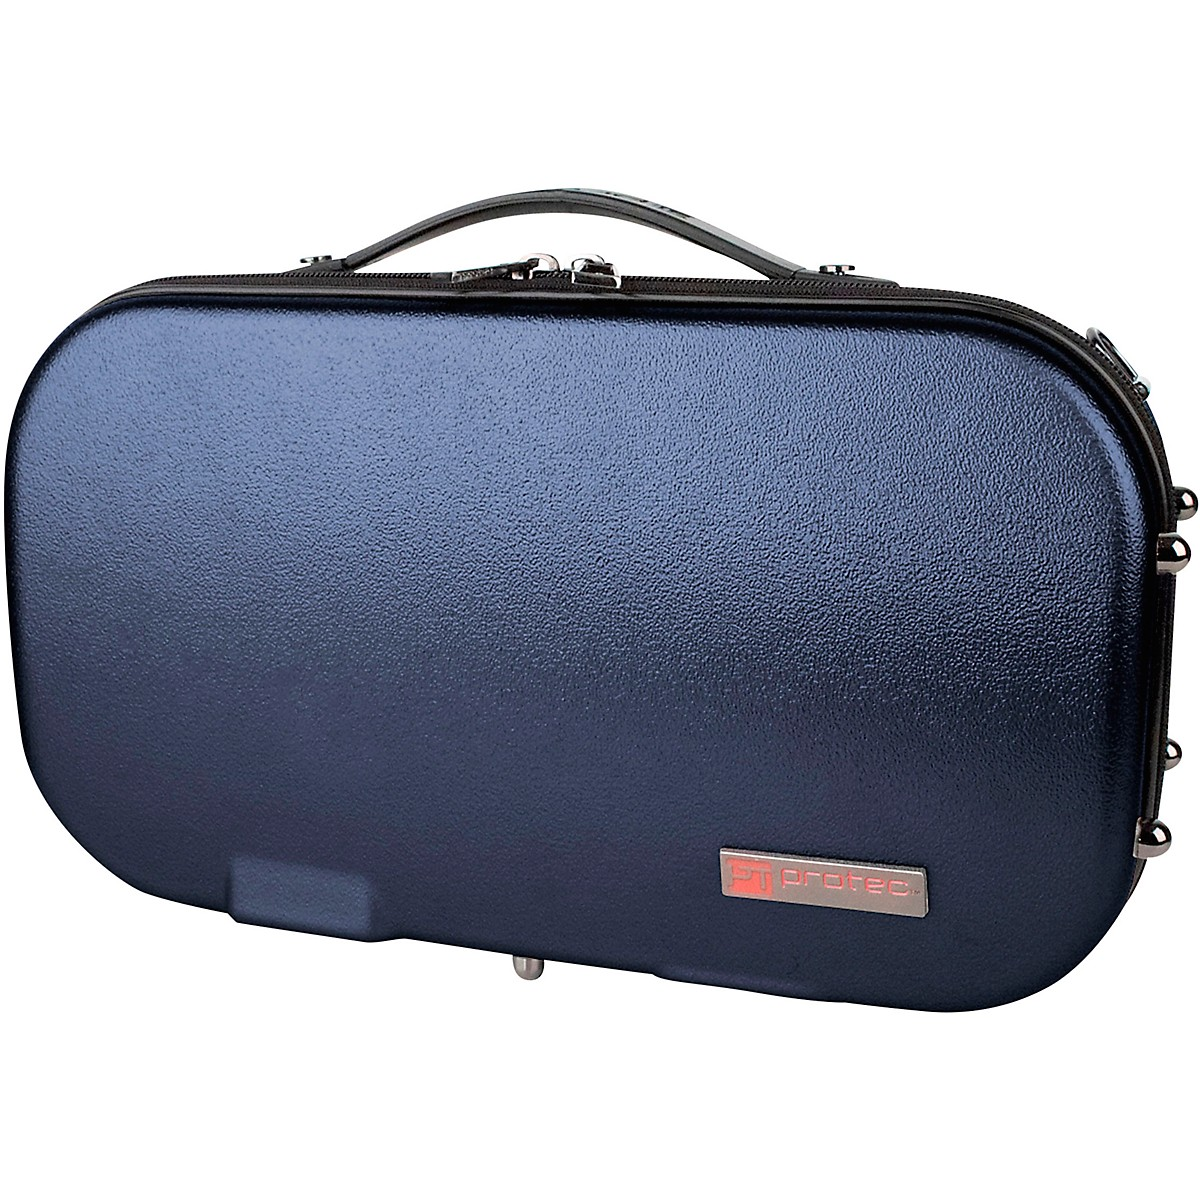 Protec Micro ZIP Clarinet Case